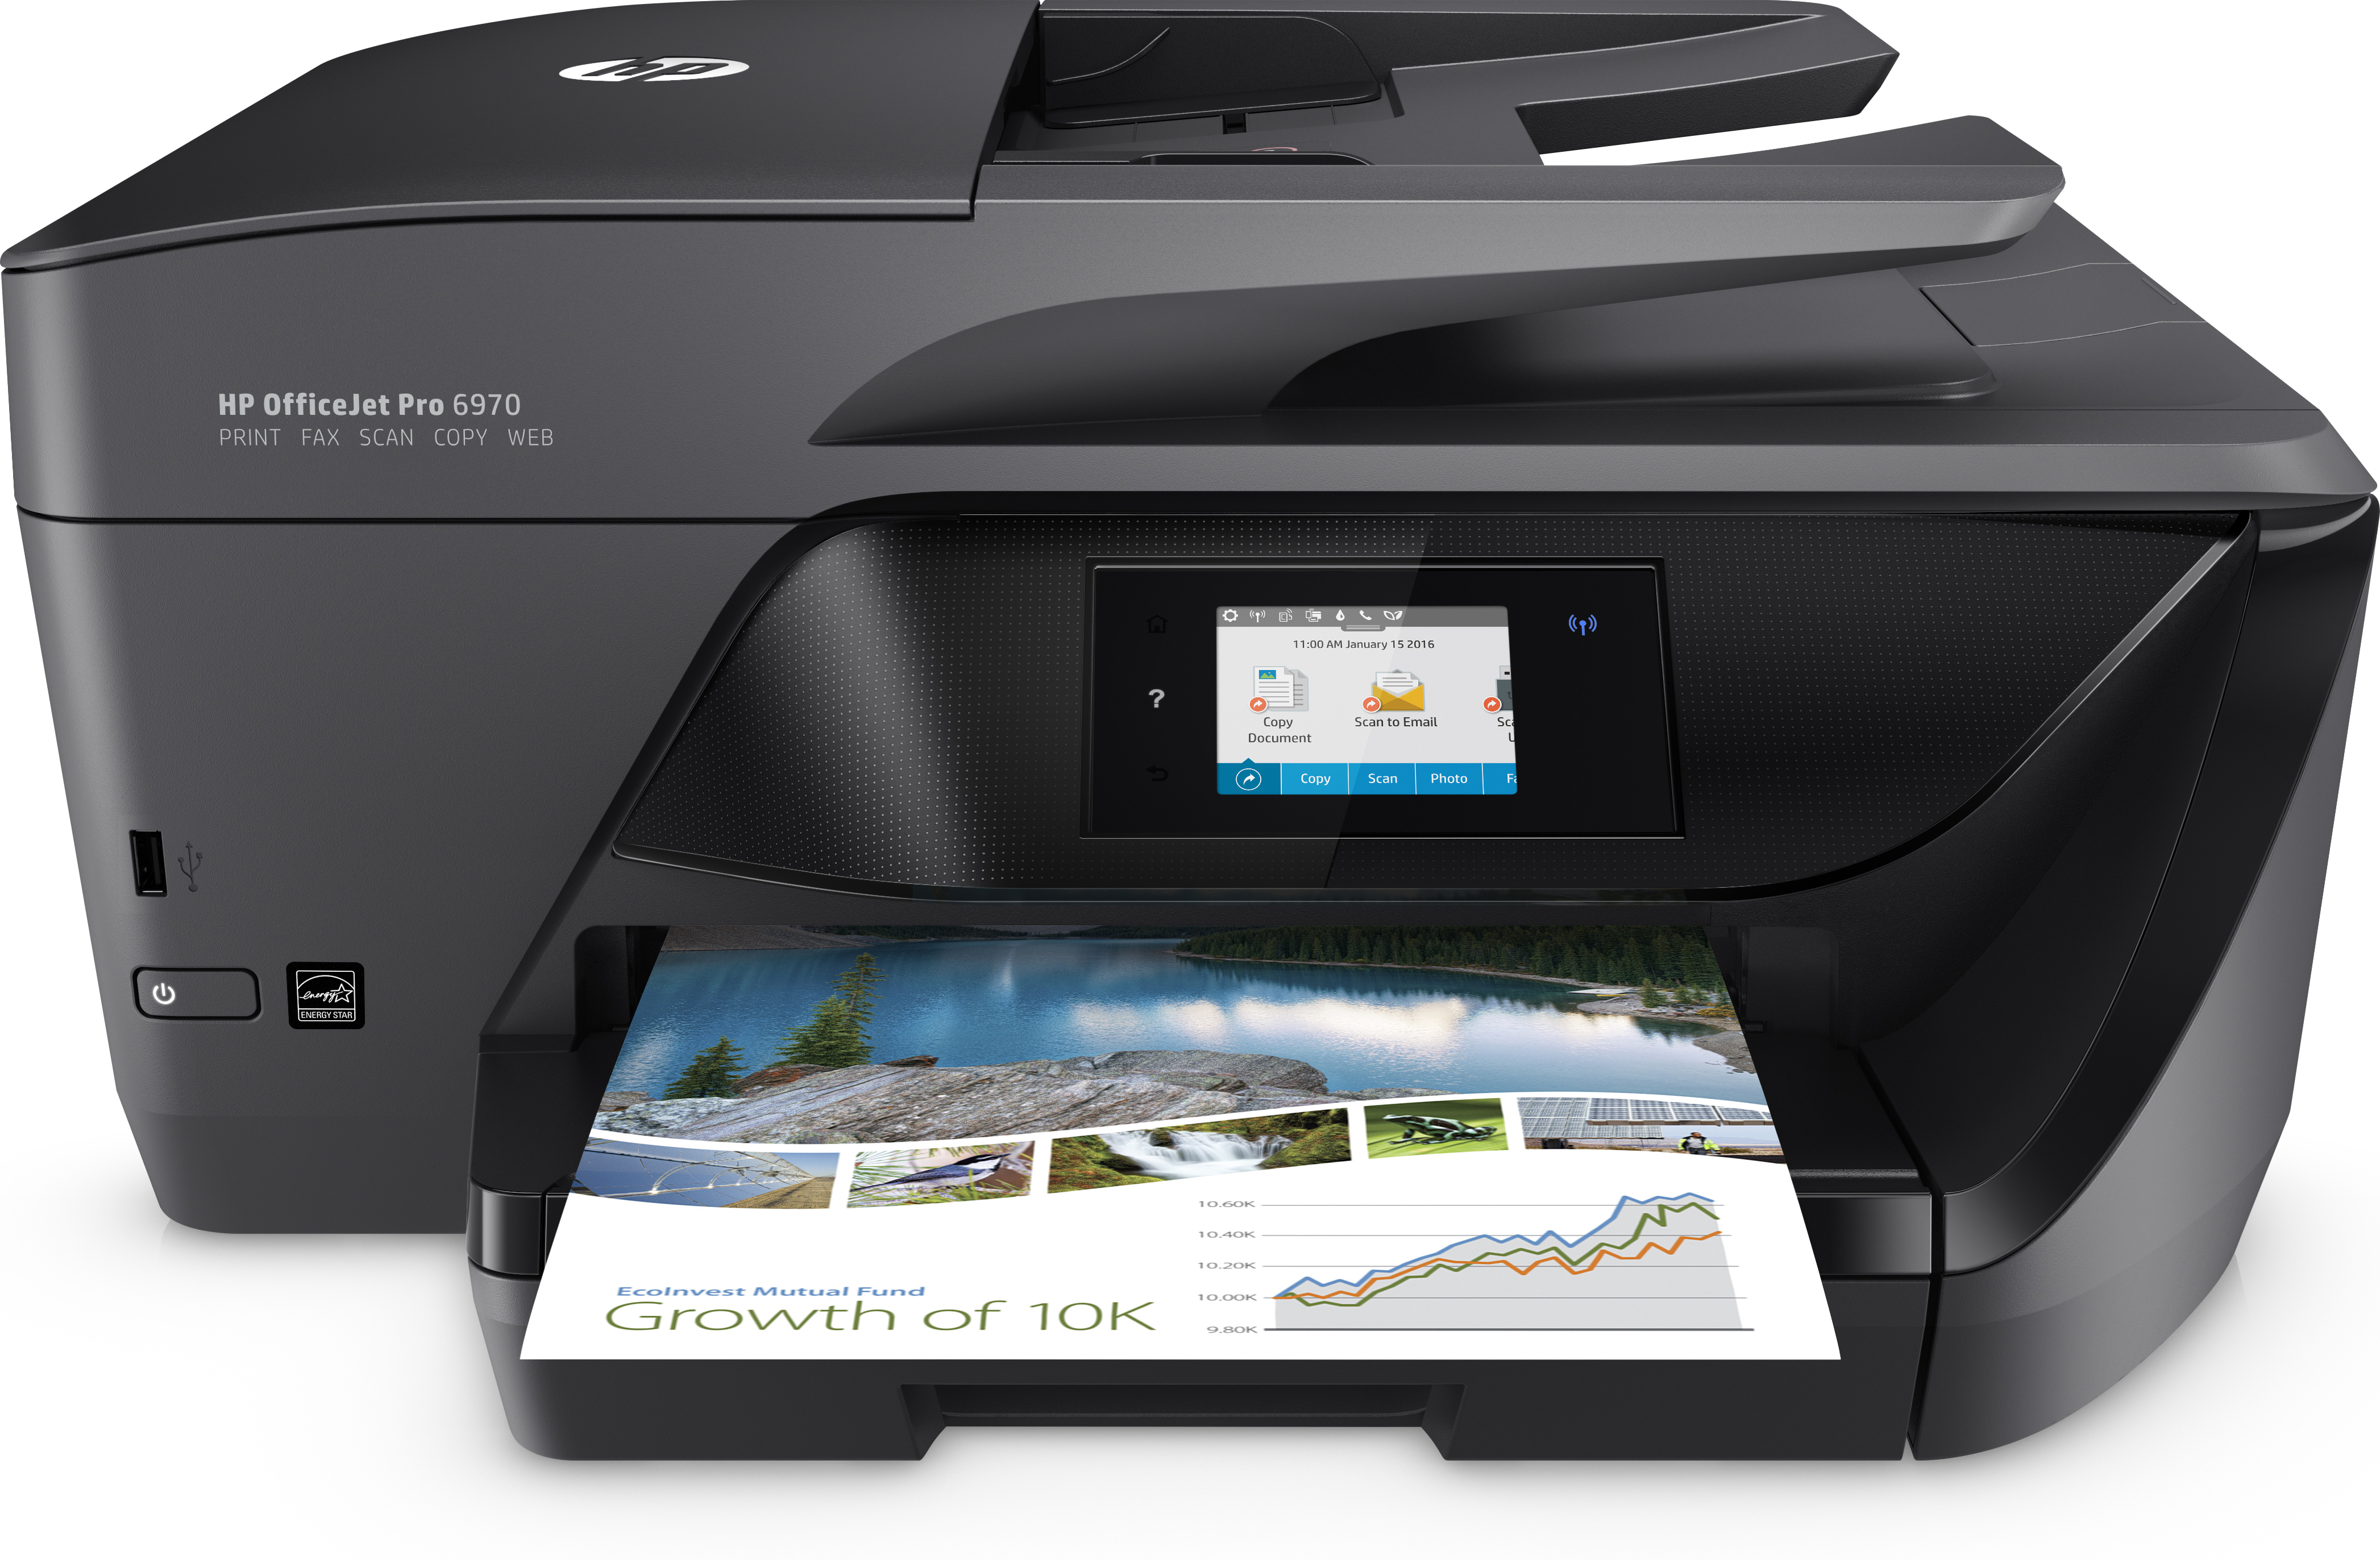 HP OfficeJet Pro 6970 e-All-in-One, Tinte, MFP, A4